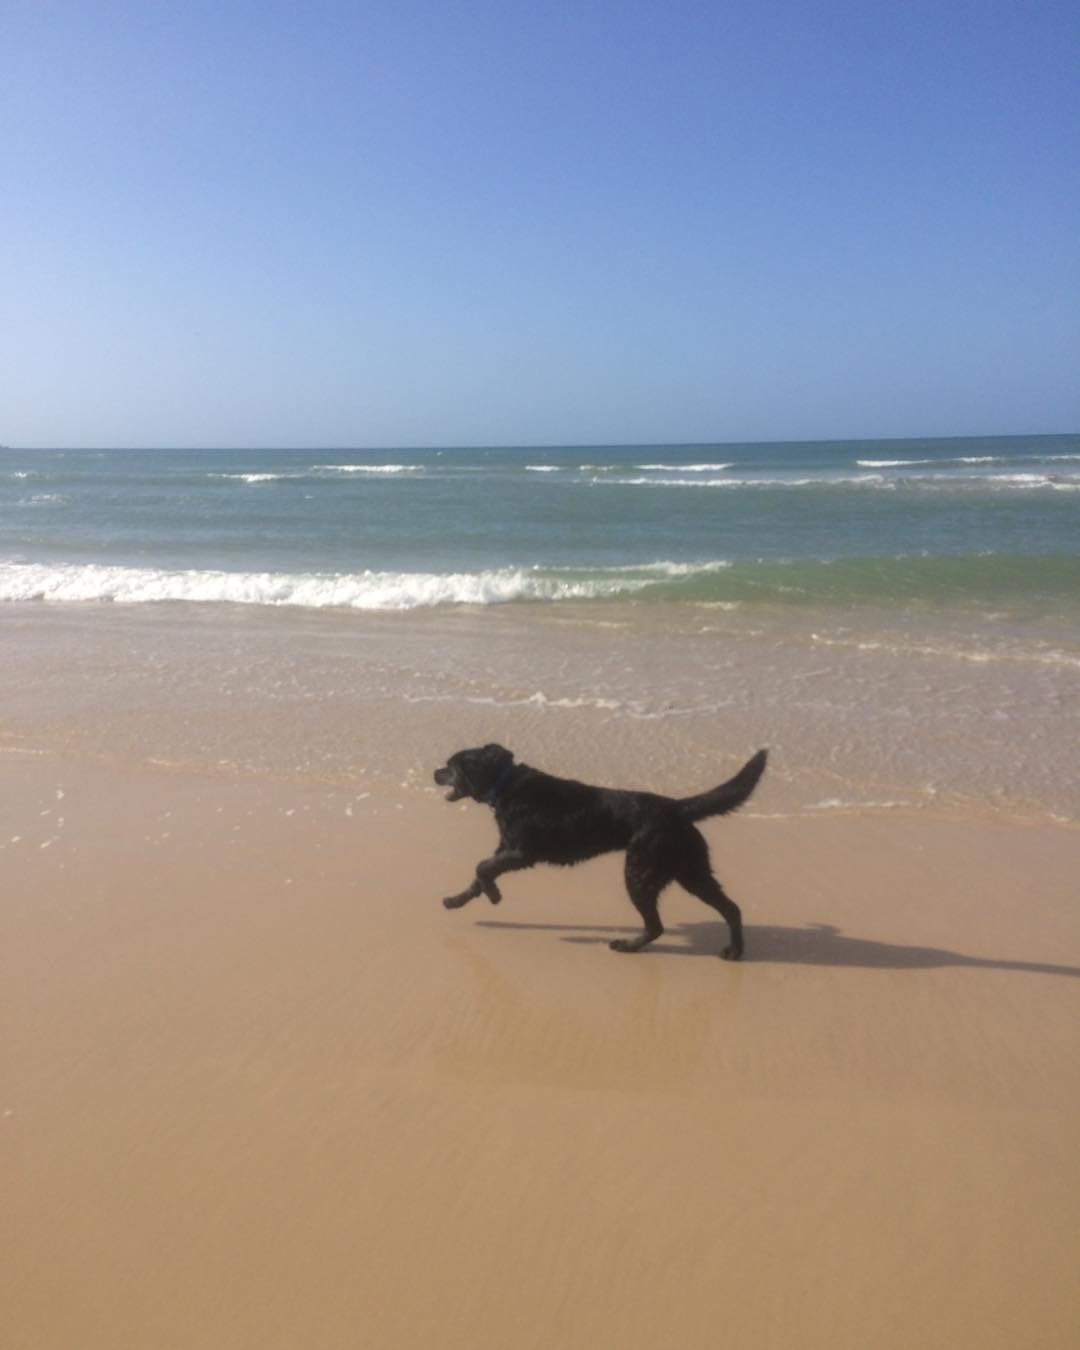 Bosco pup running free along the dog beach today